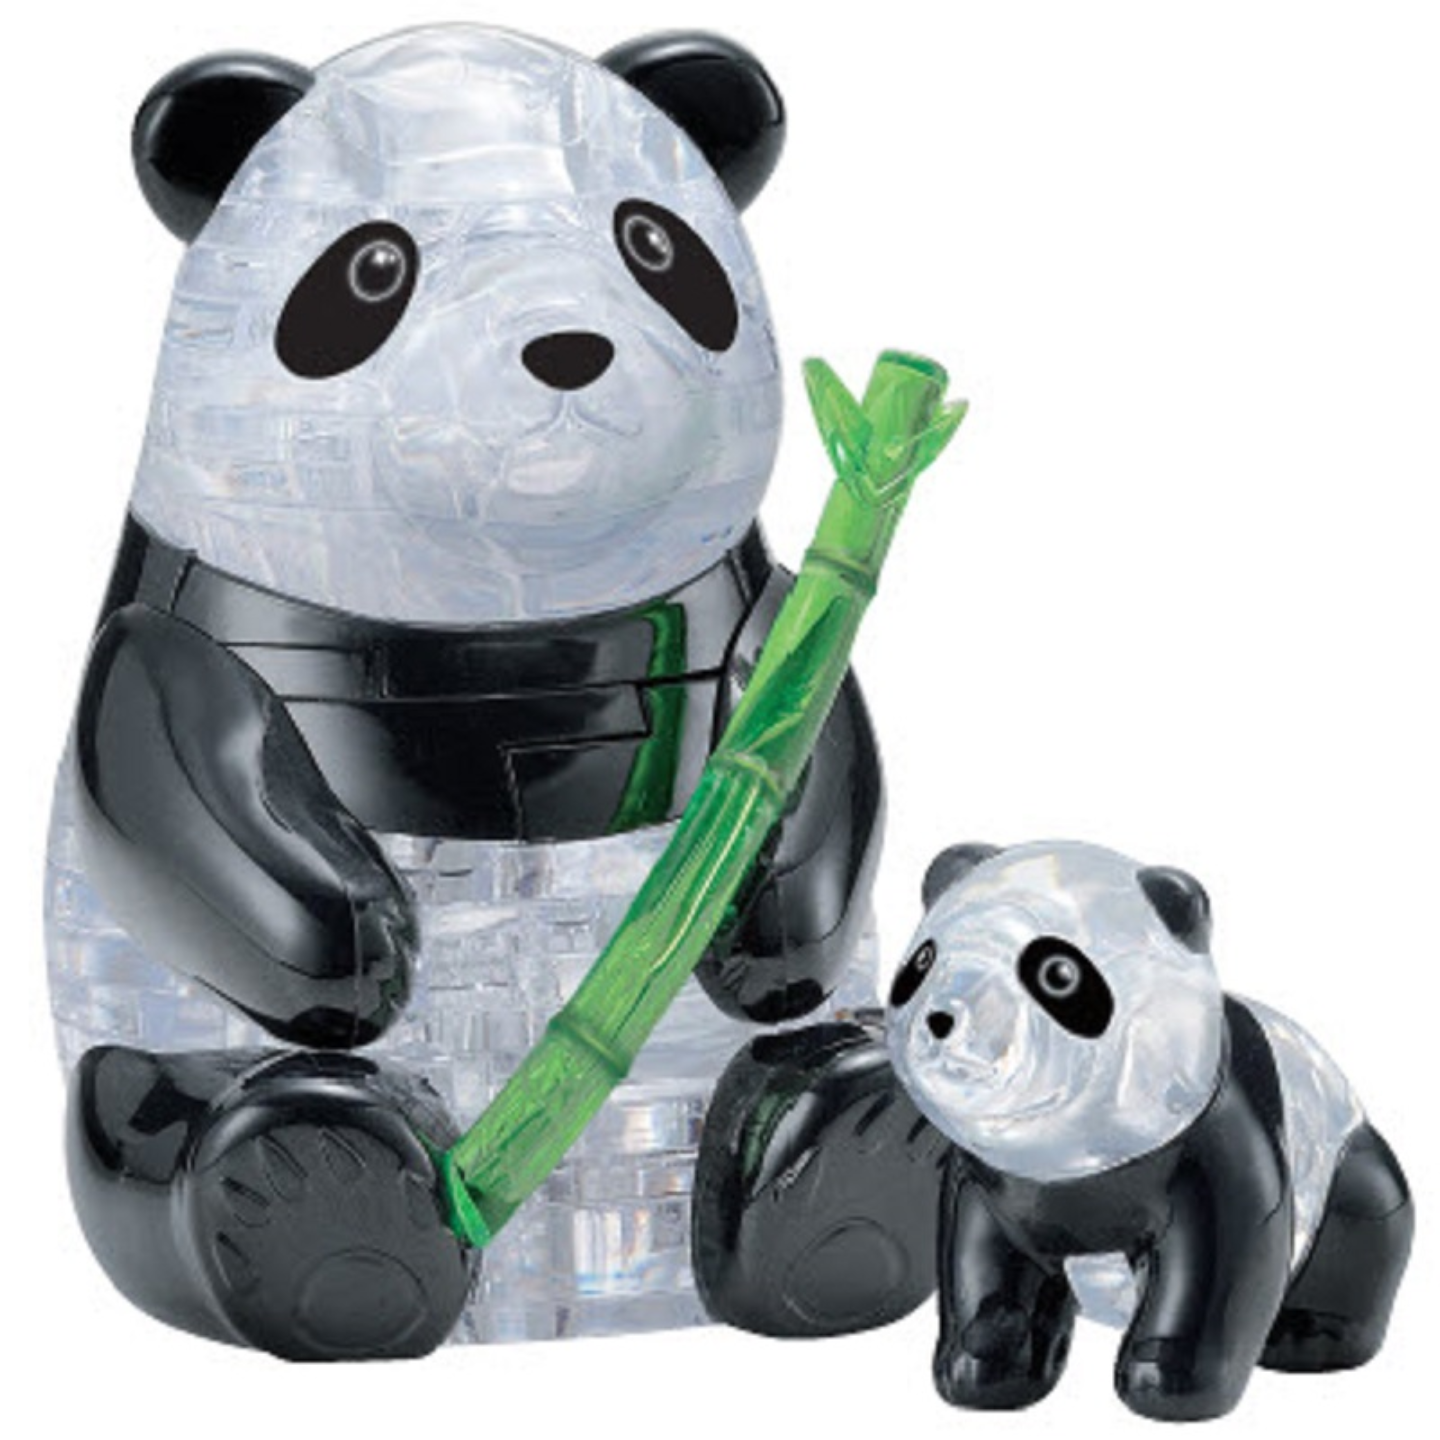 Jigsaw Puzzle Play N Learn 3D Crystal Puzzle Panda & Baby Set